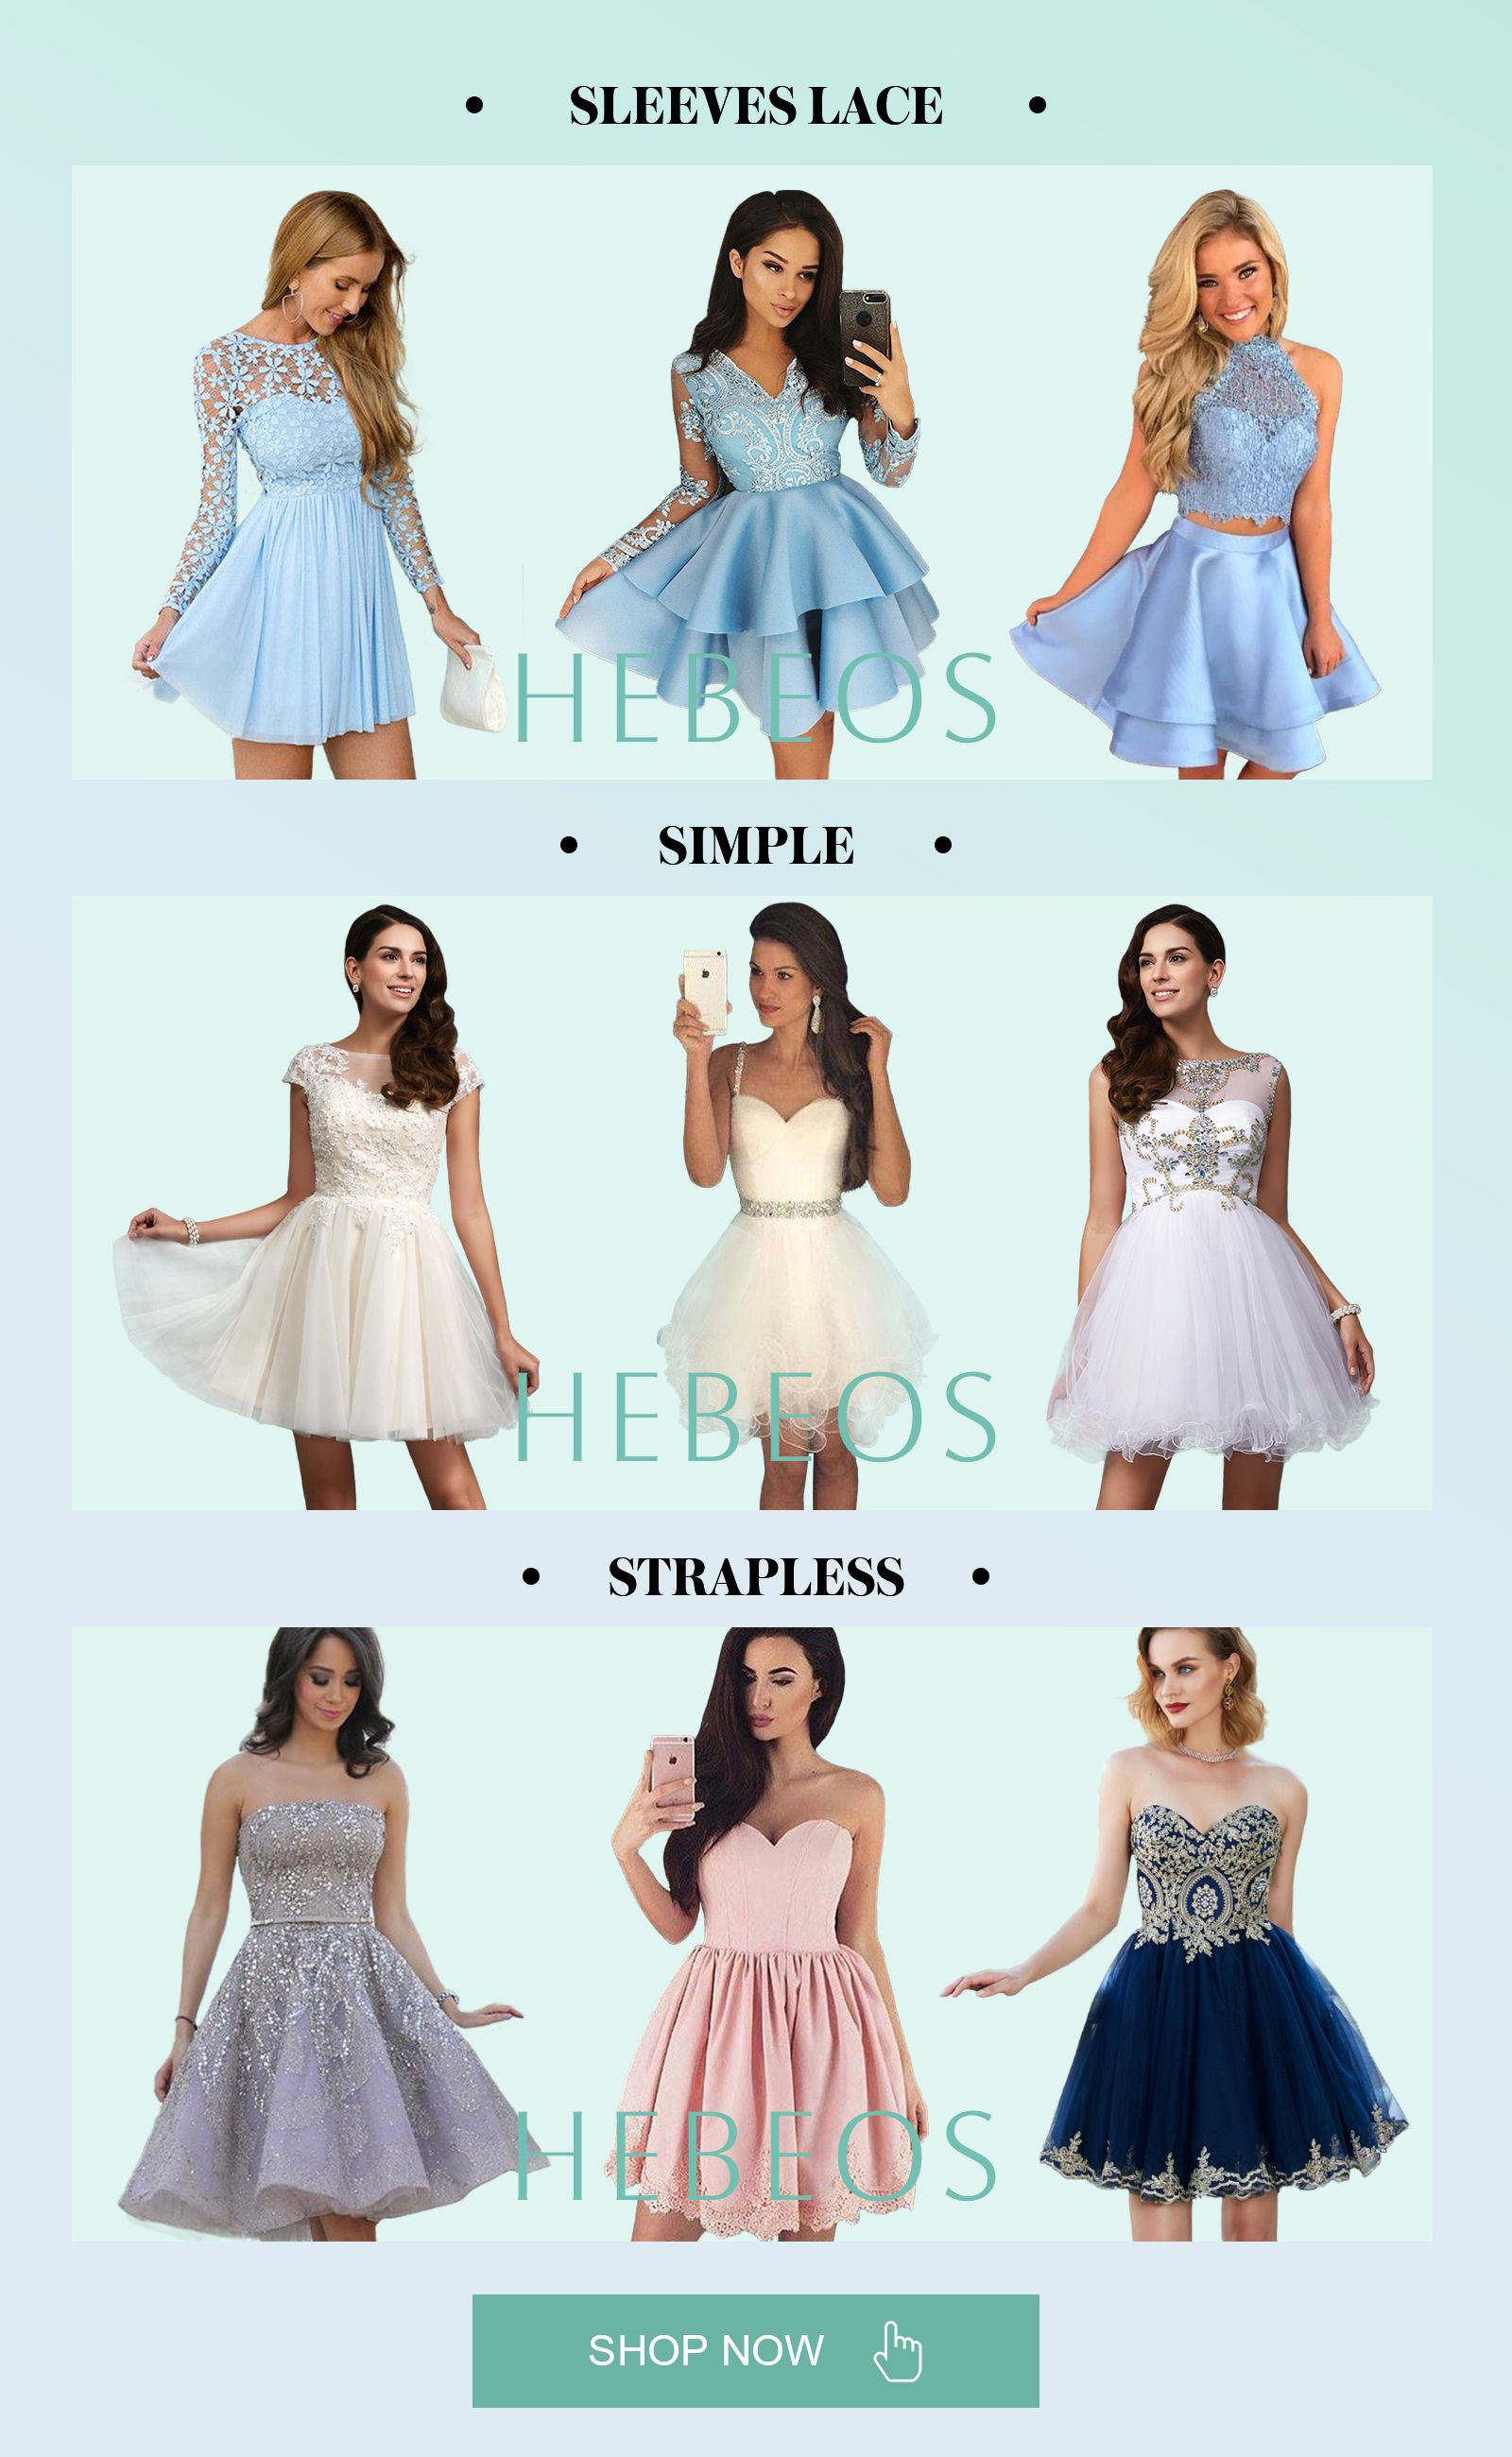 homecoming dresses, cheap homecoming dresses online - hebeos